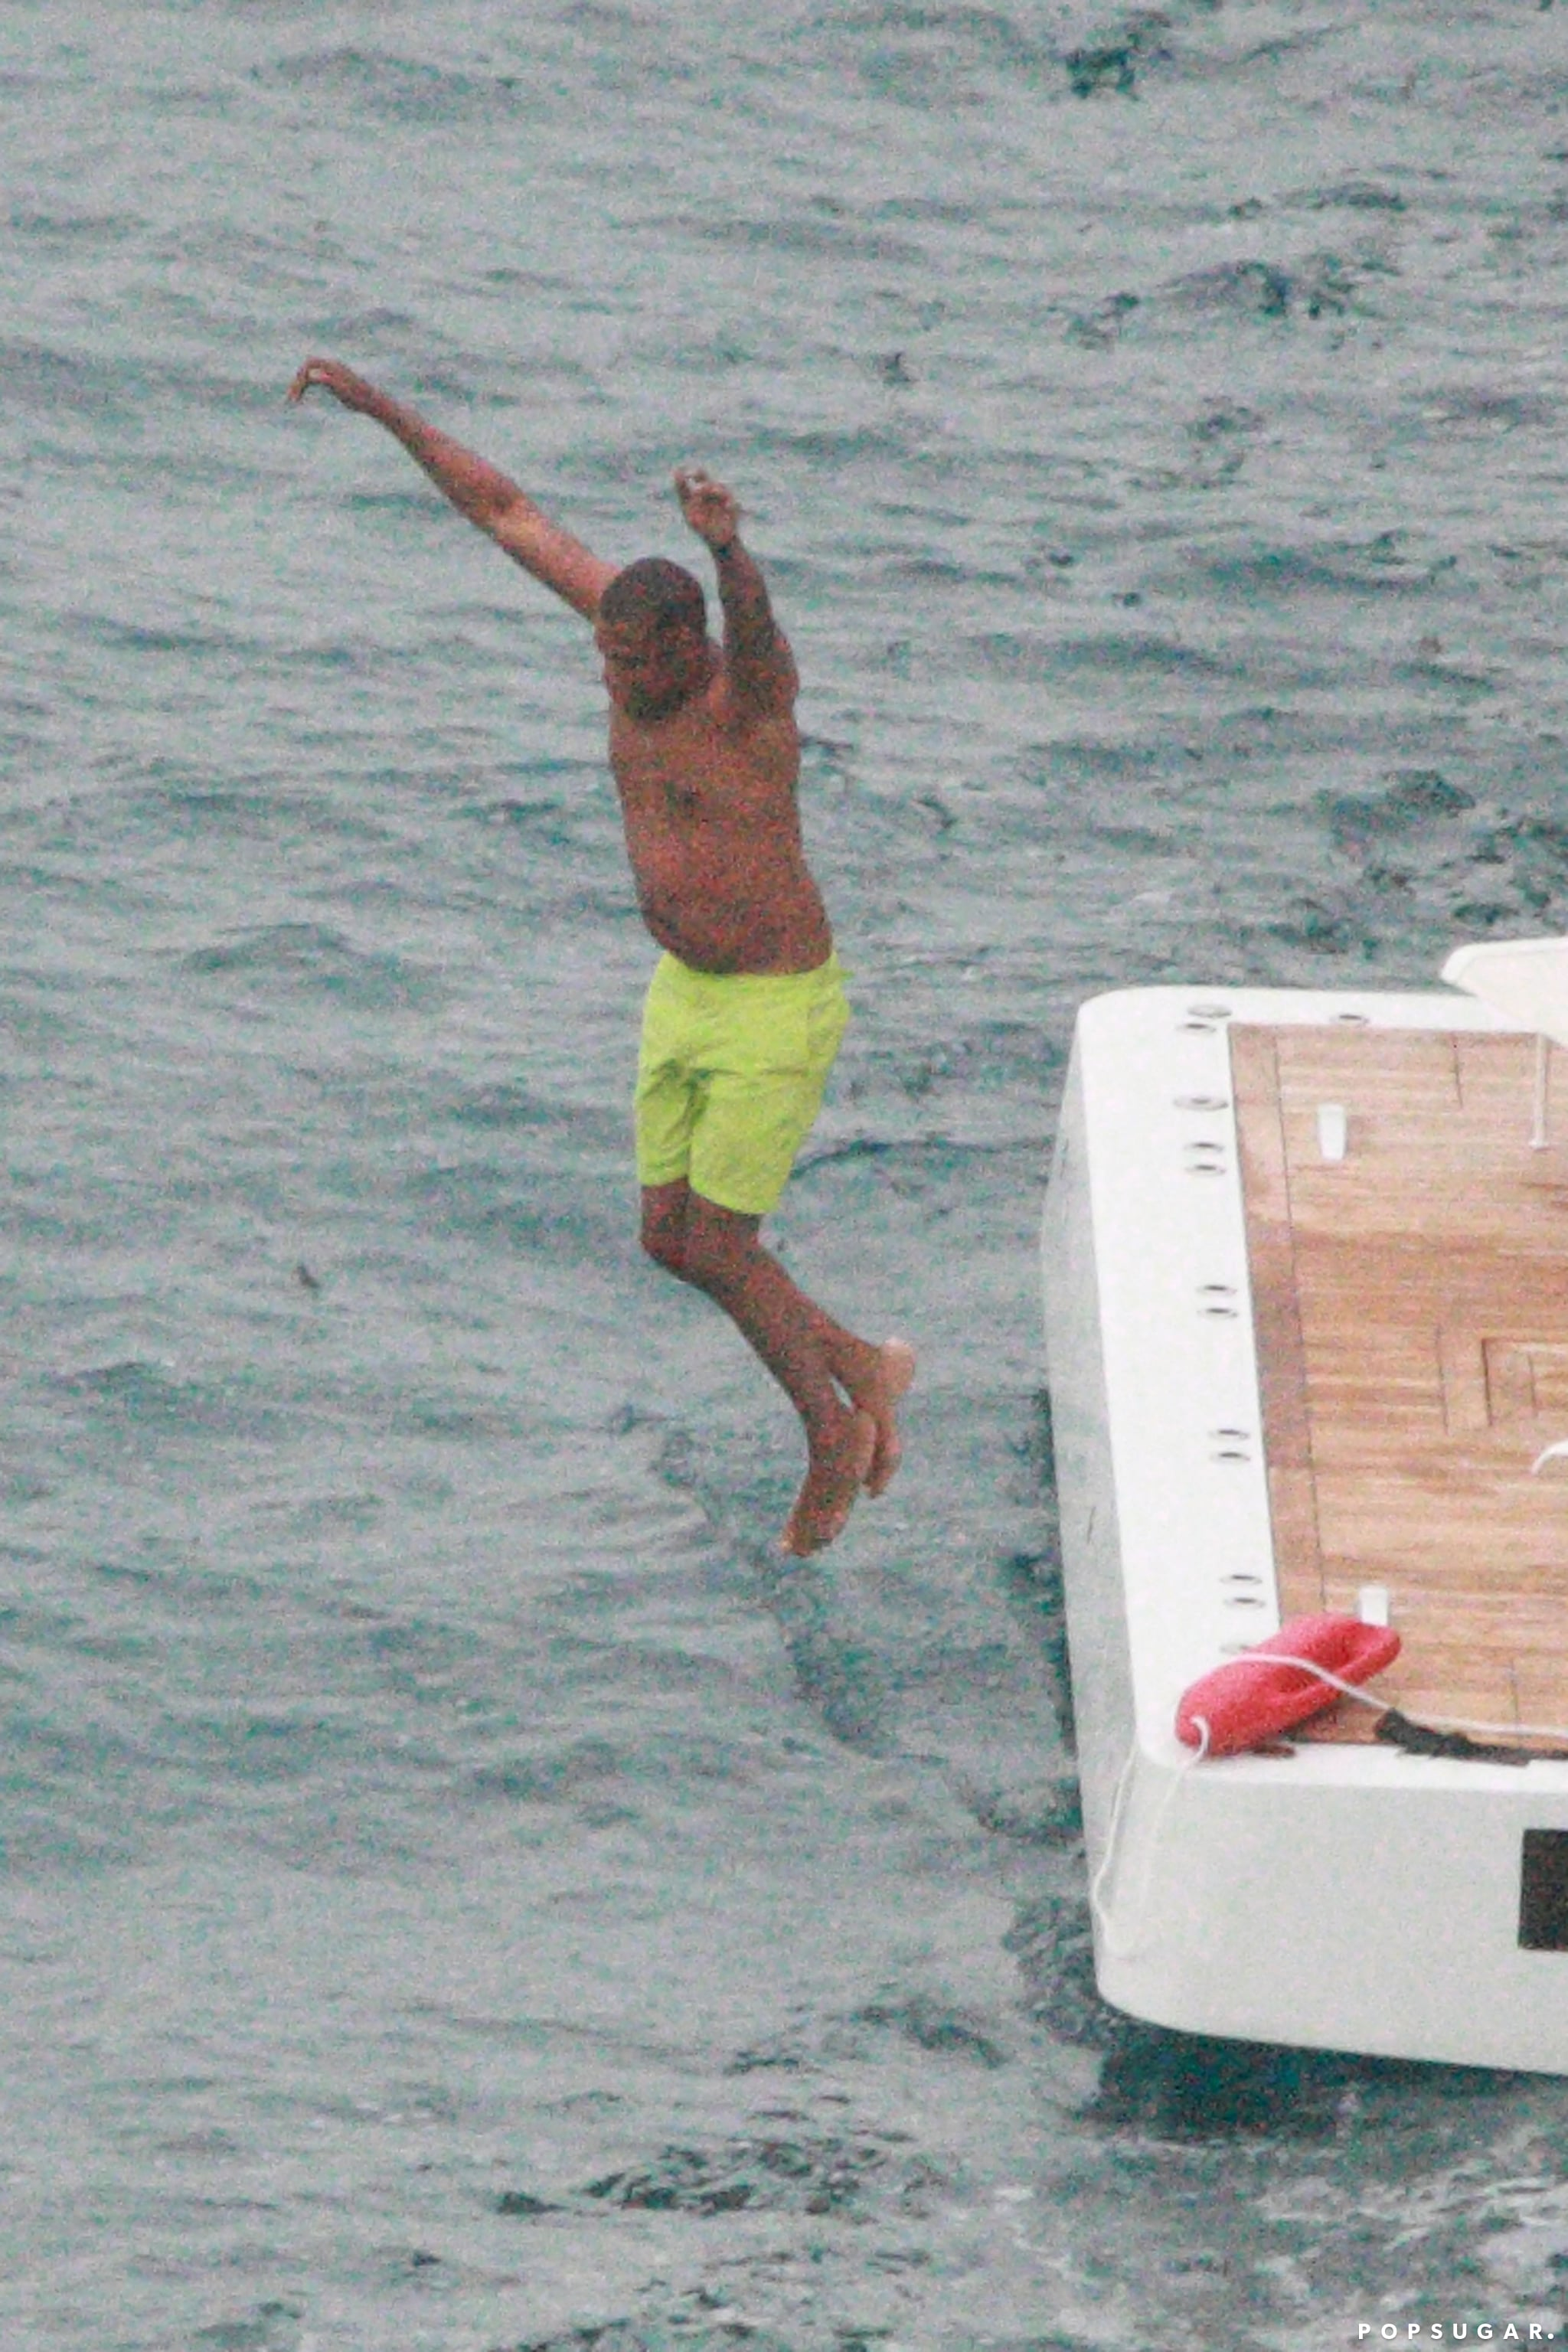 Jay Z jumped into the water.